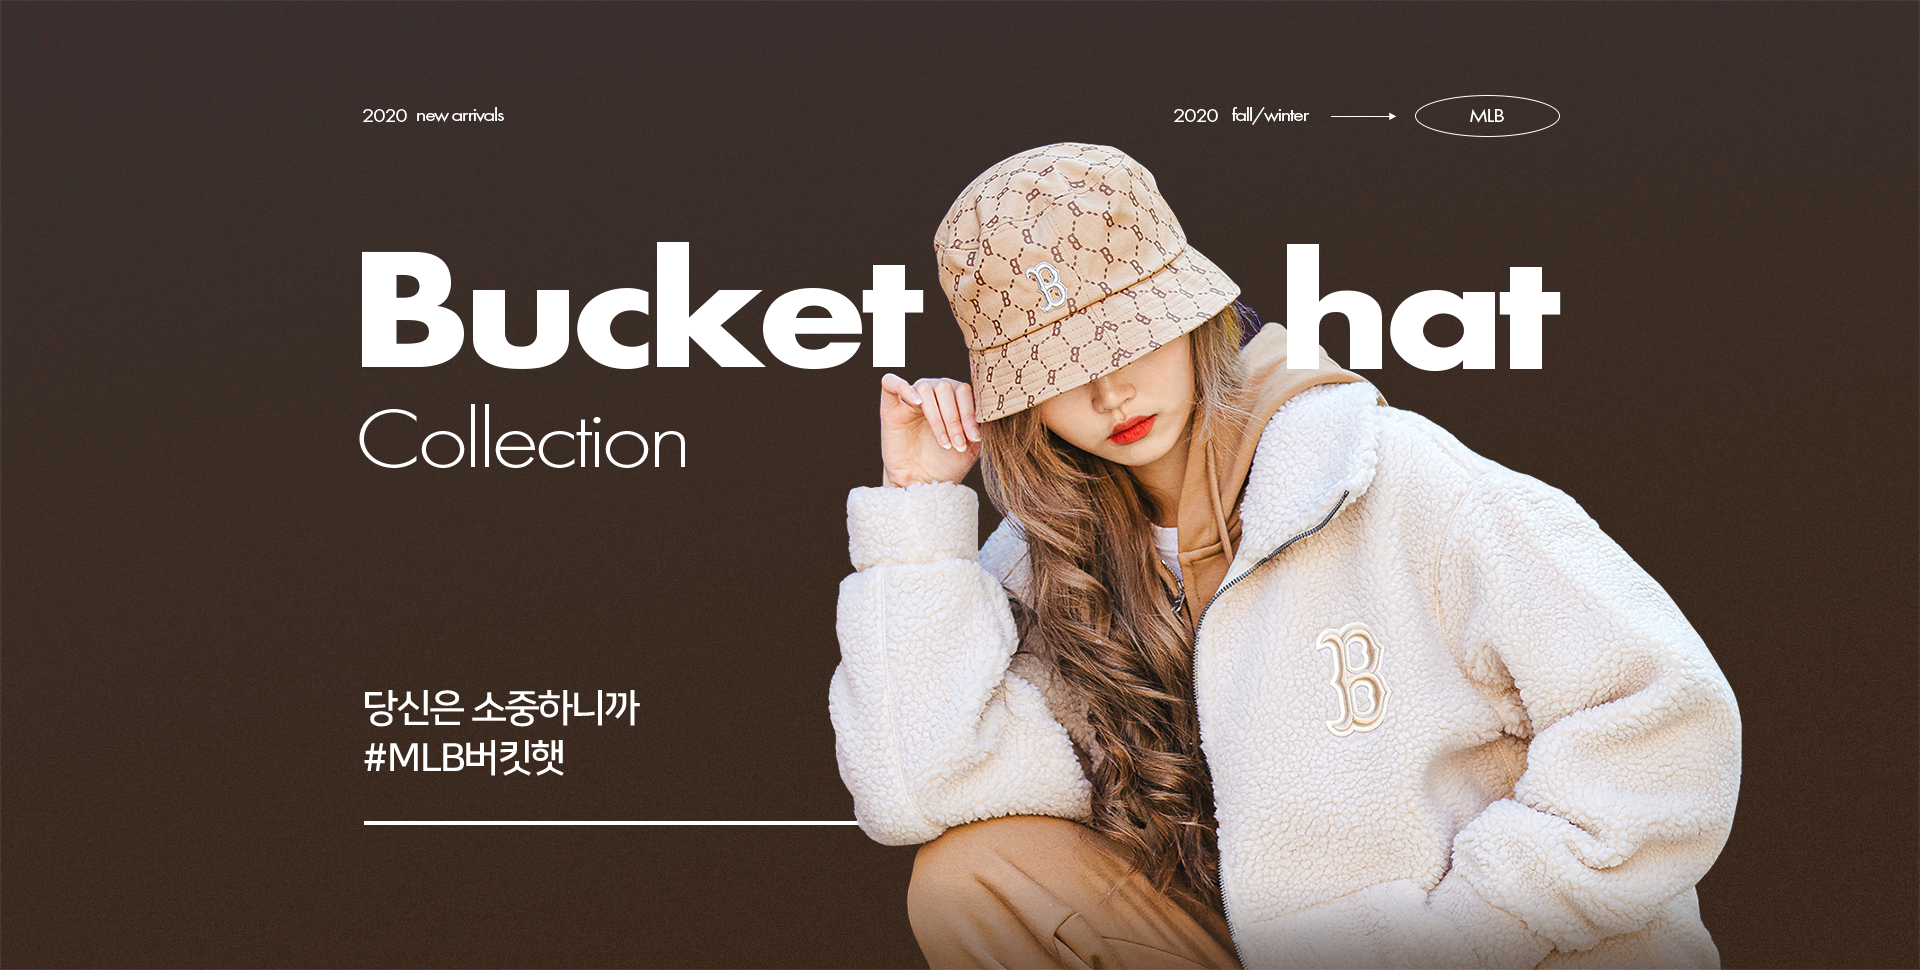 20 new arrivals 2020 fall/winter MLB Bucket hat Collection #MLB버킷햇